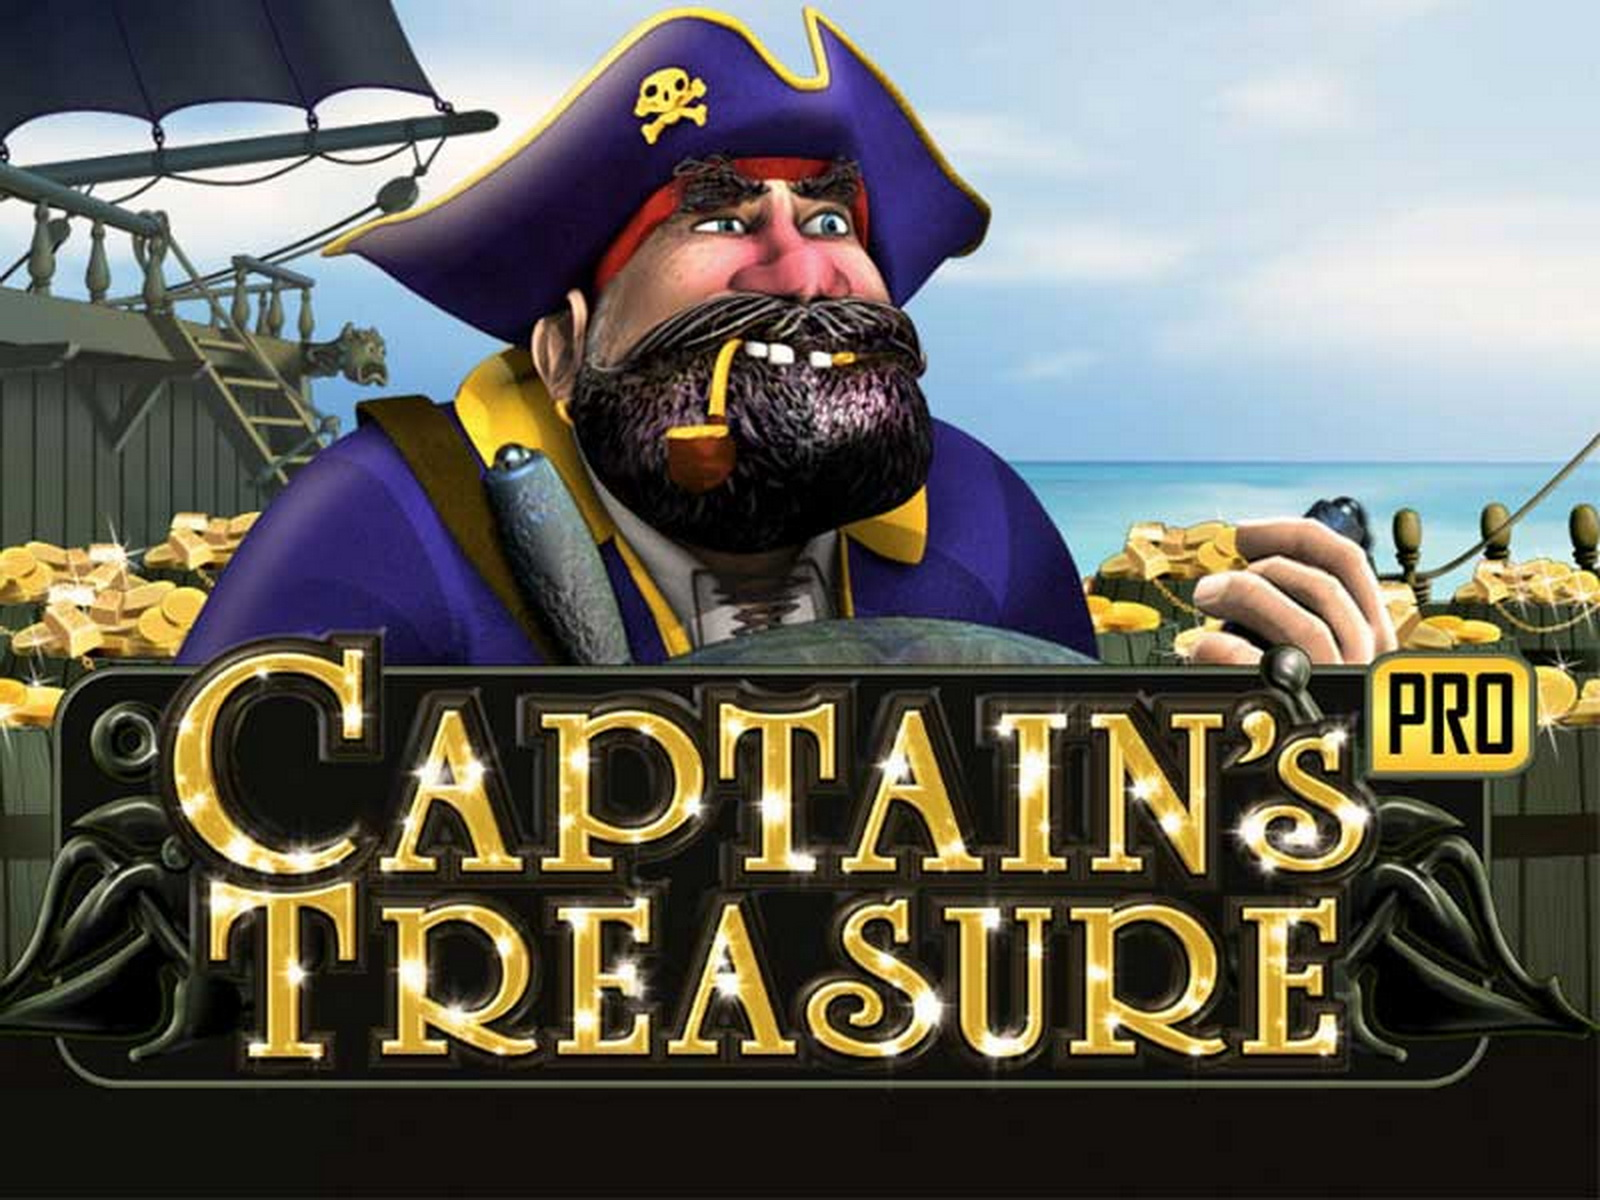 The Captain's Treasure (Playtech) Online Slot Demo Game by Playtech